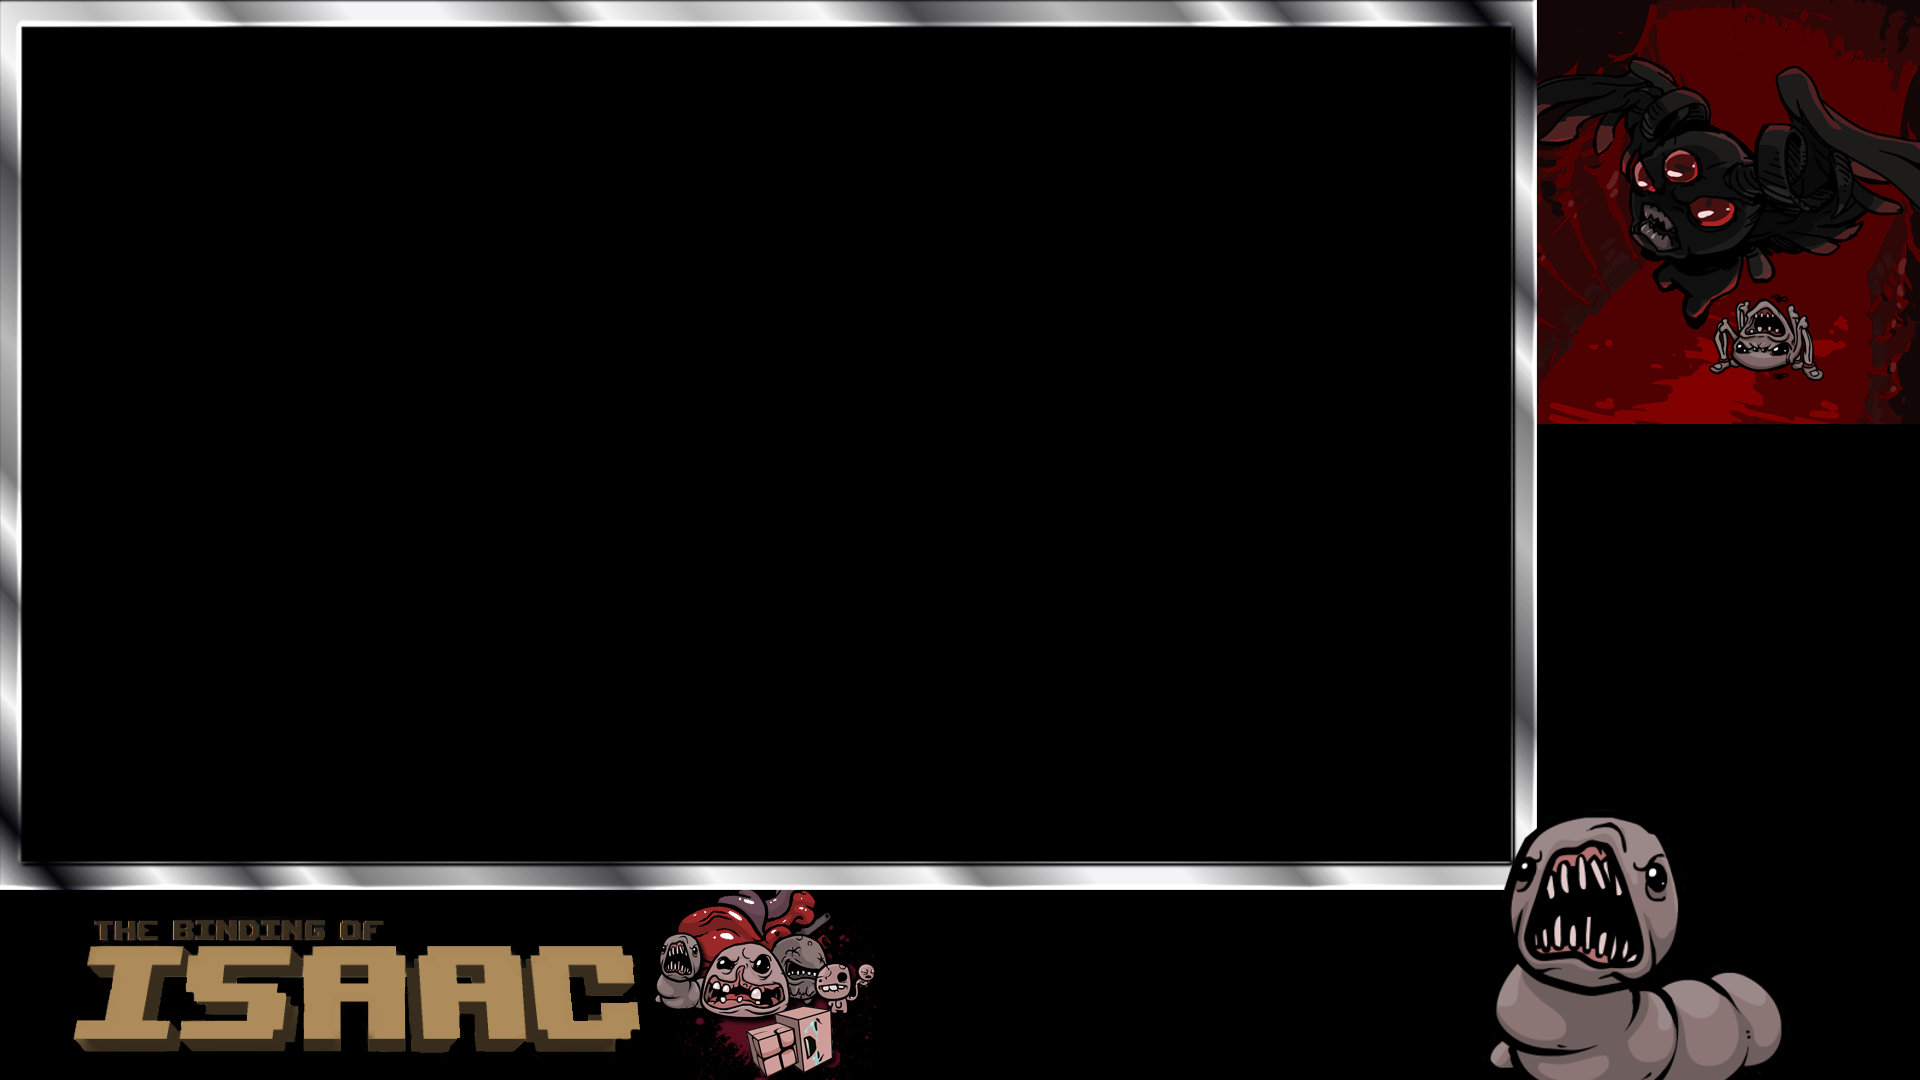 binding of isaac background twitch